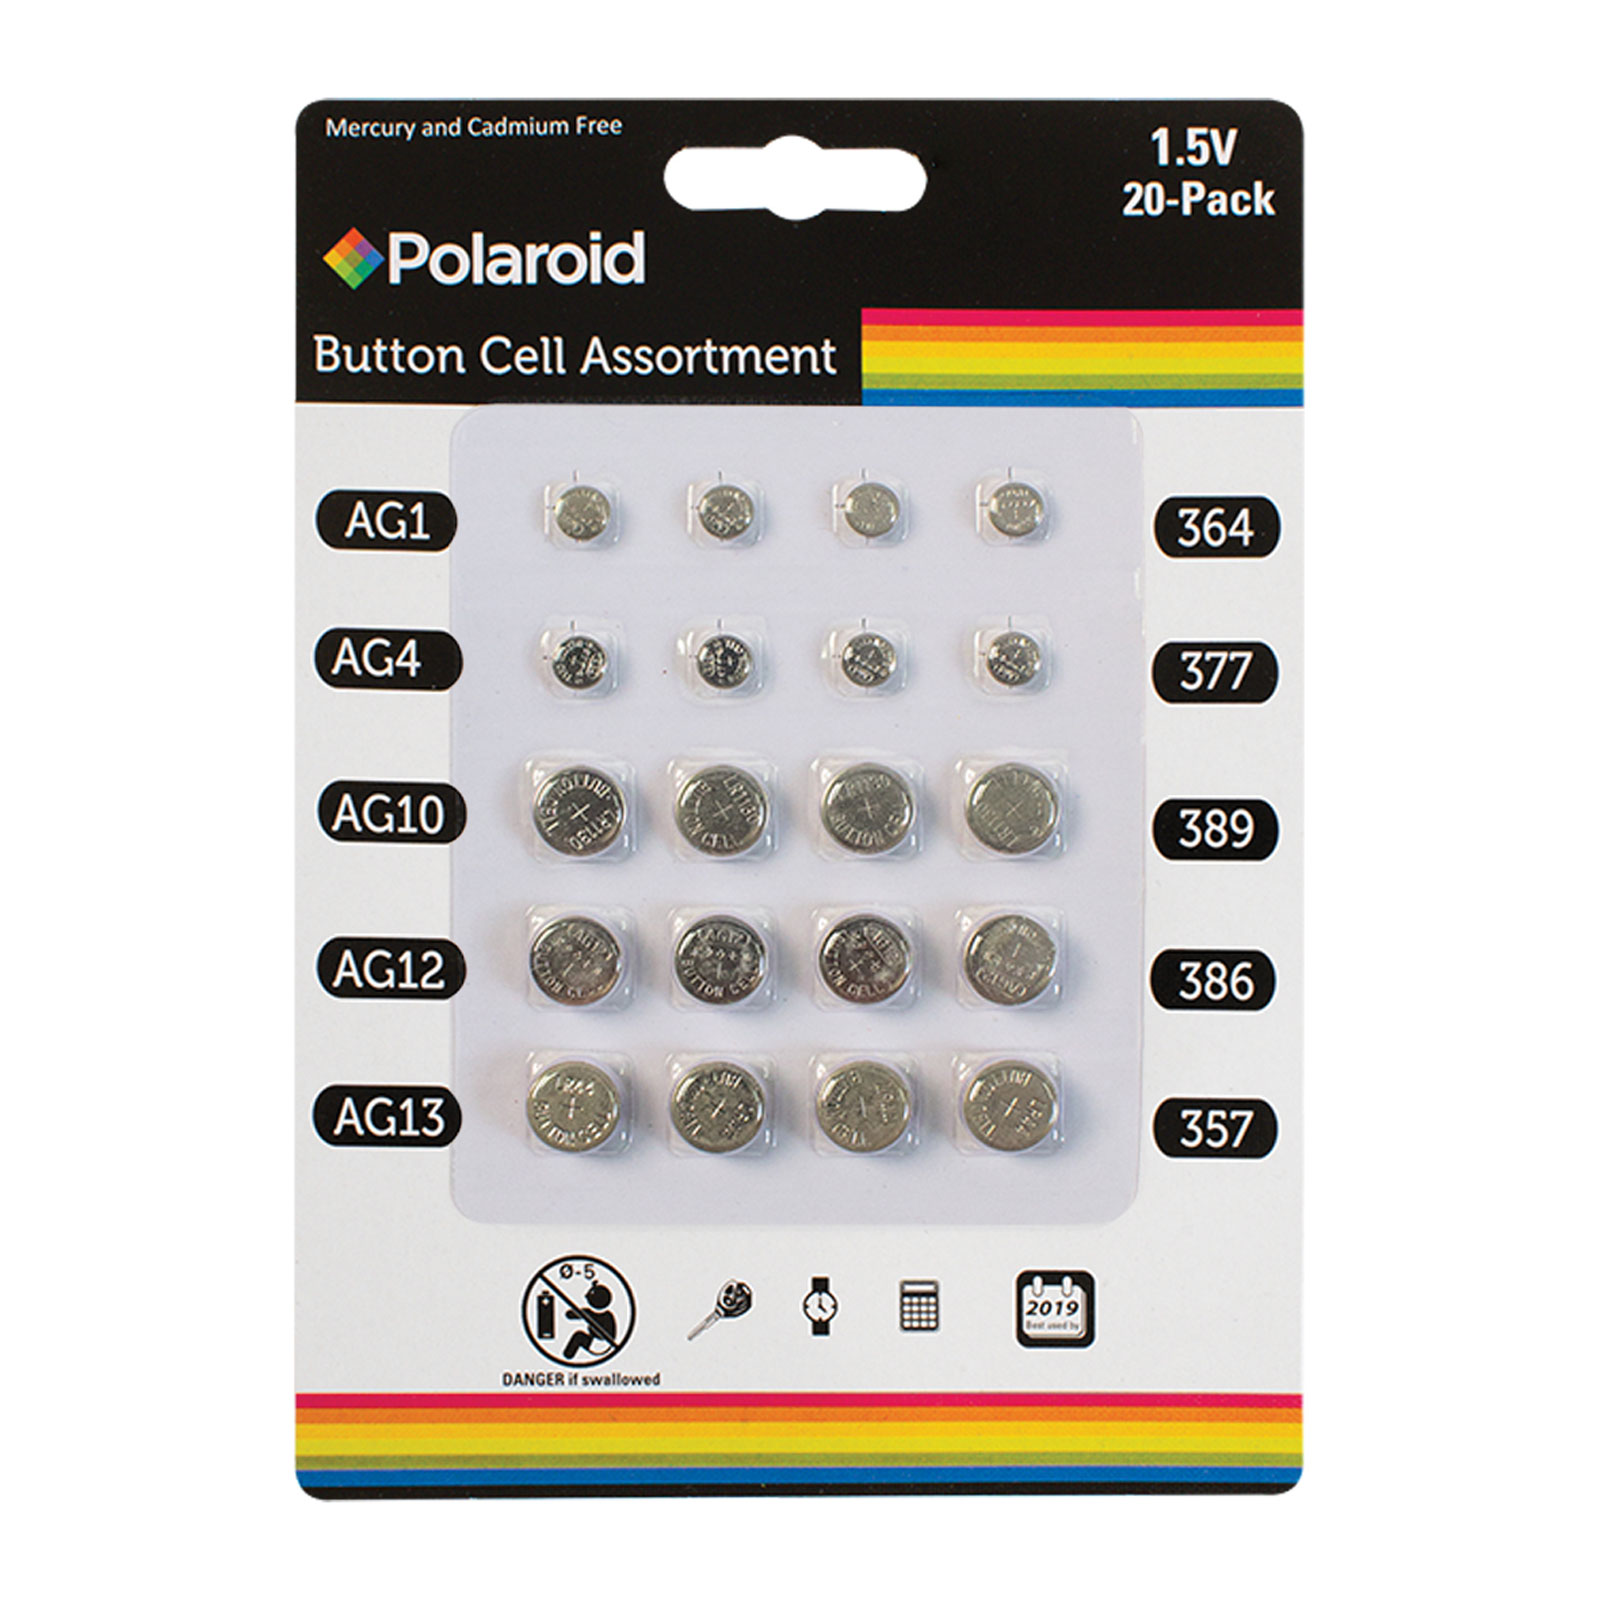 Search Results For Assortment: Polaroid 15V 20 Pack Button Cell Assortment Batteries